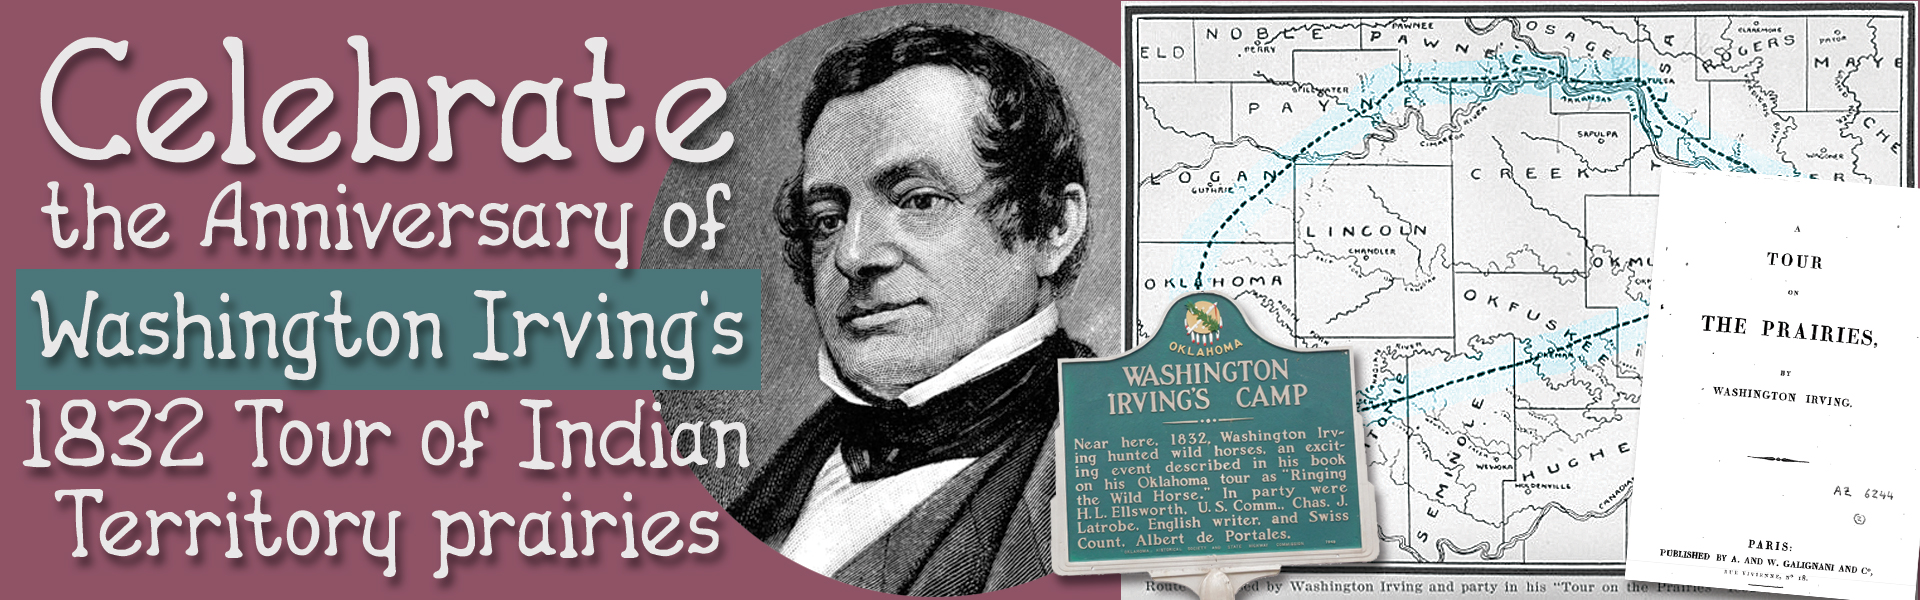 Washington Irving: Tour on the Prairies